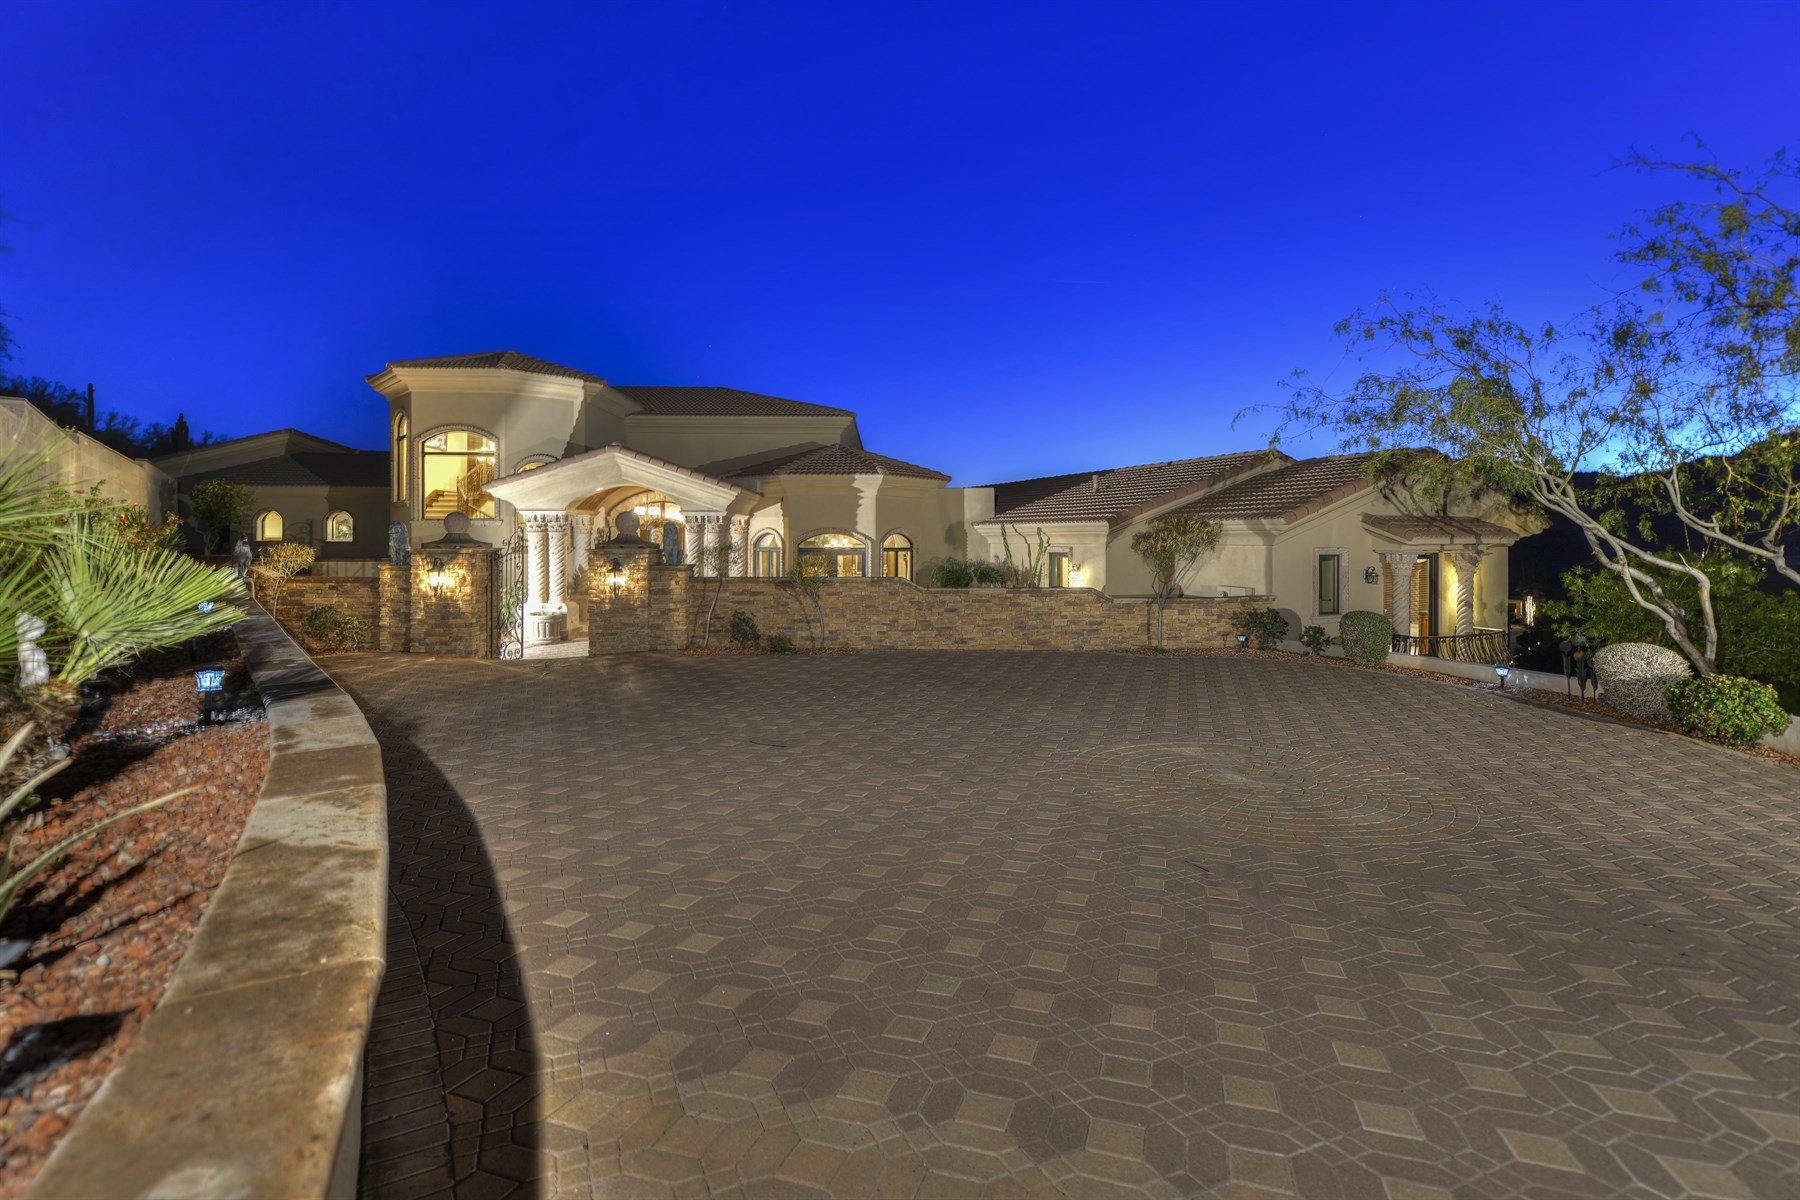 Moradia para Venda às European-Inspired Private Hillside Estate with Sweeping Twinkling City Light Vie 7024 N Longlook Rd Paradise Valley, Arizona, 85253 Estados Unidos